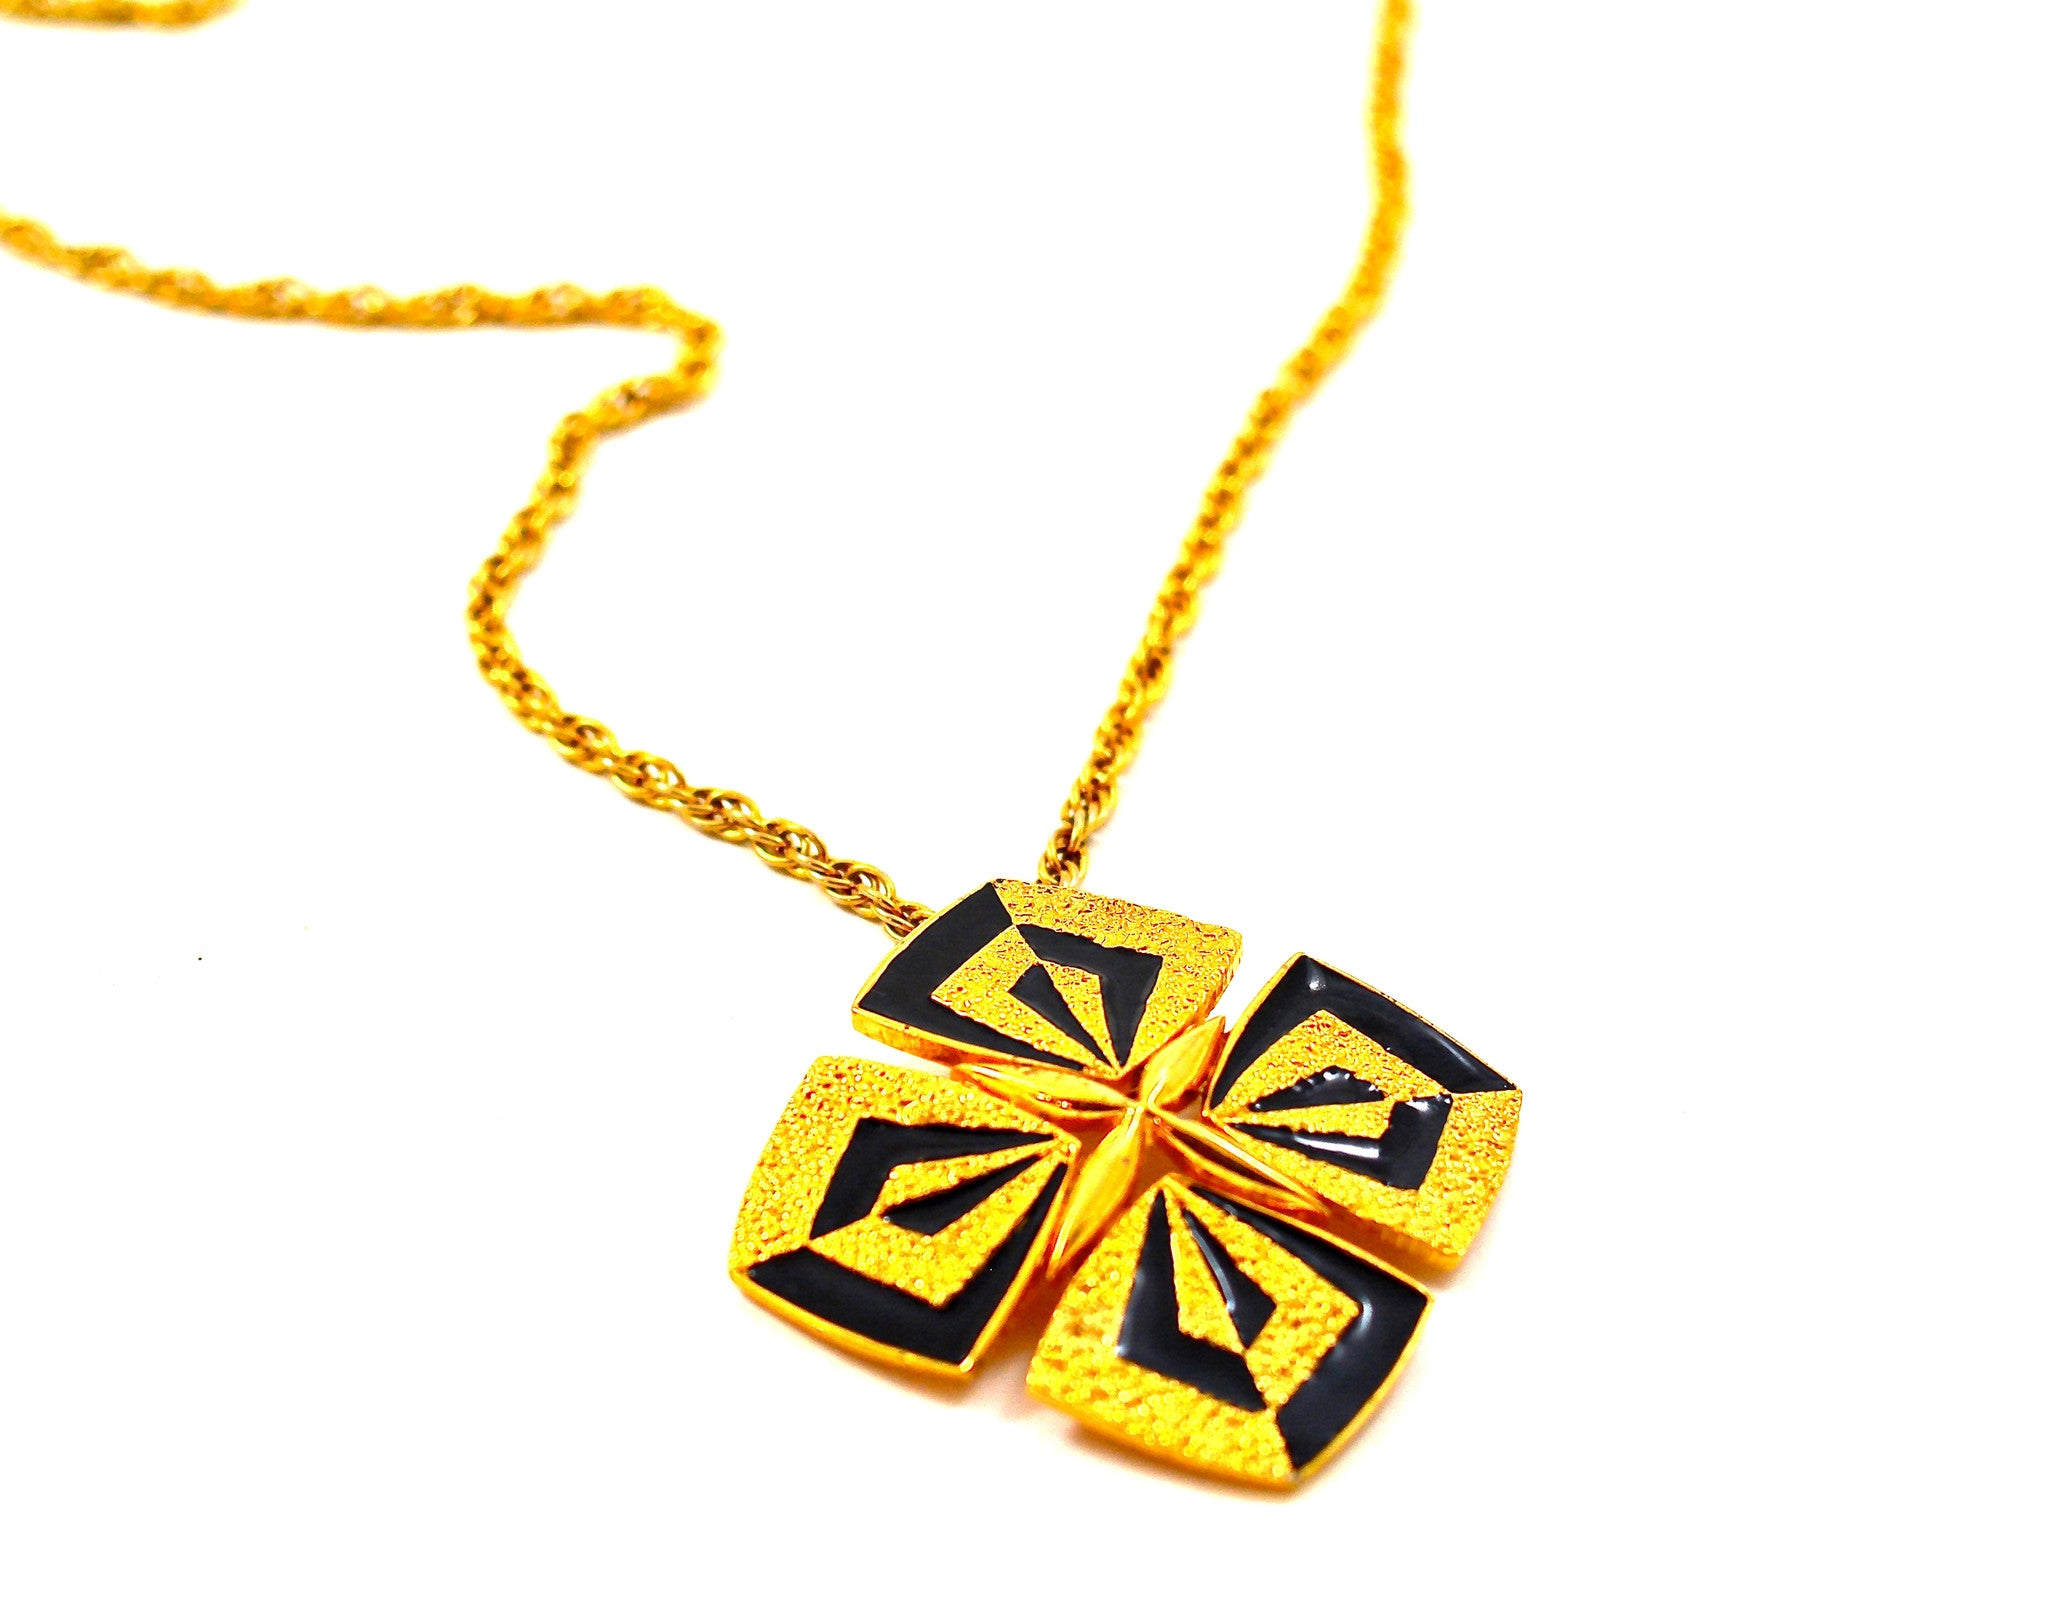 JOMAZ BLACK AND GOLD PENDANT NECKLACE